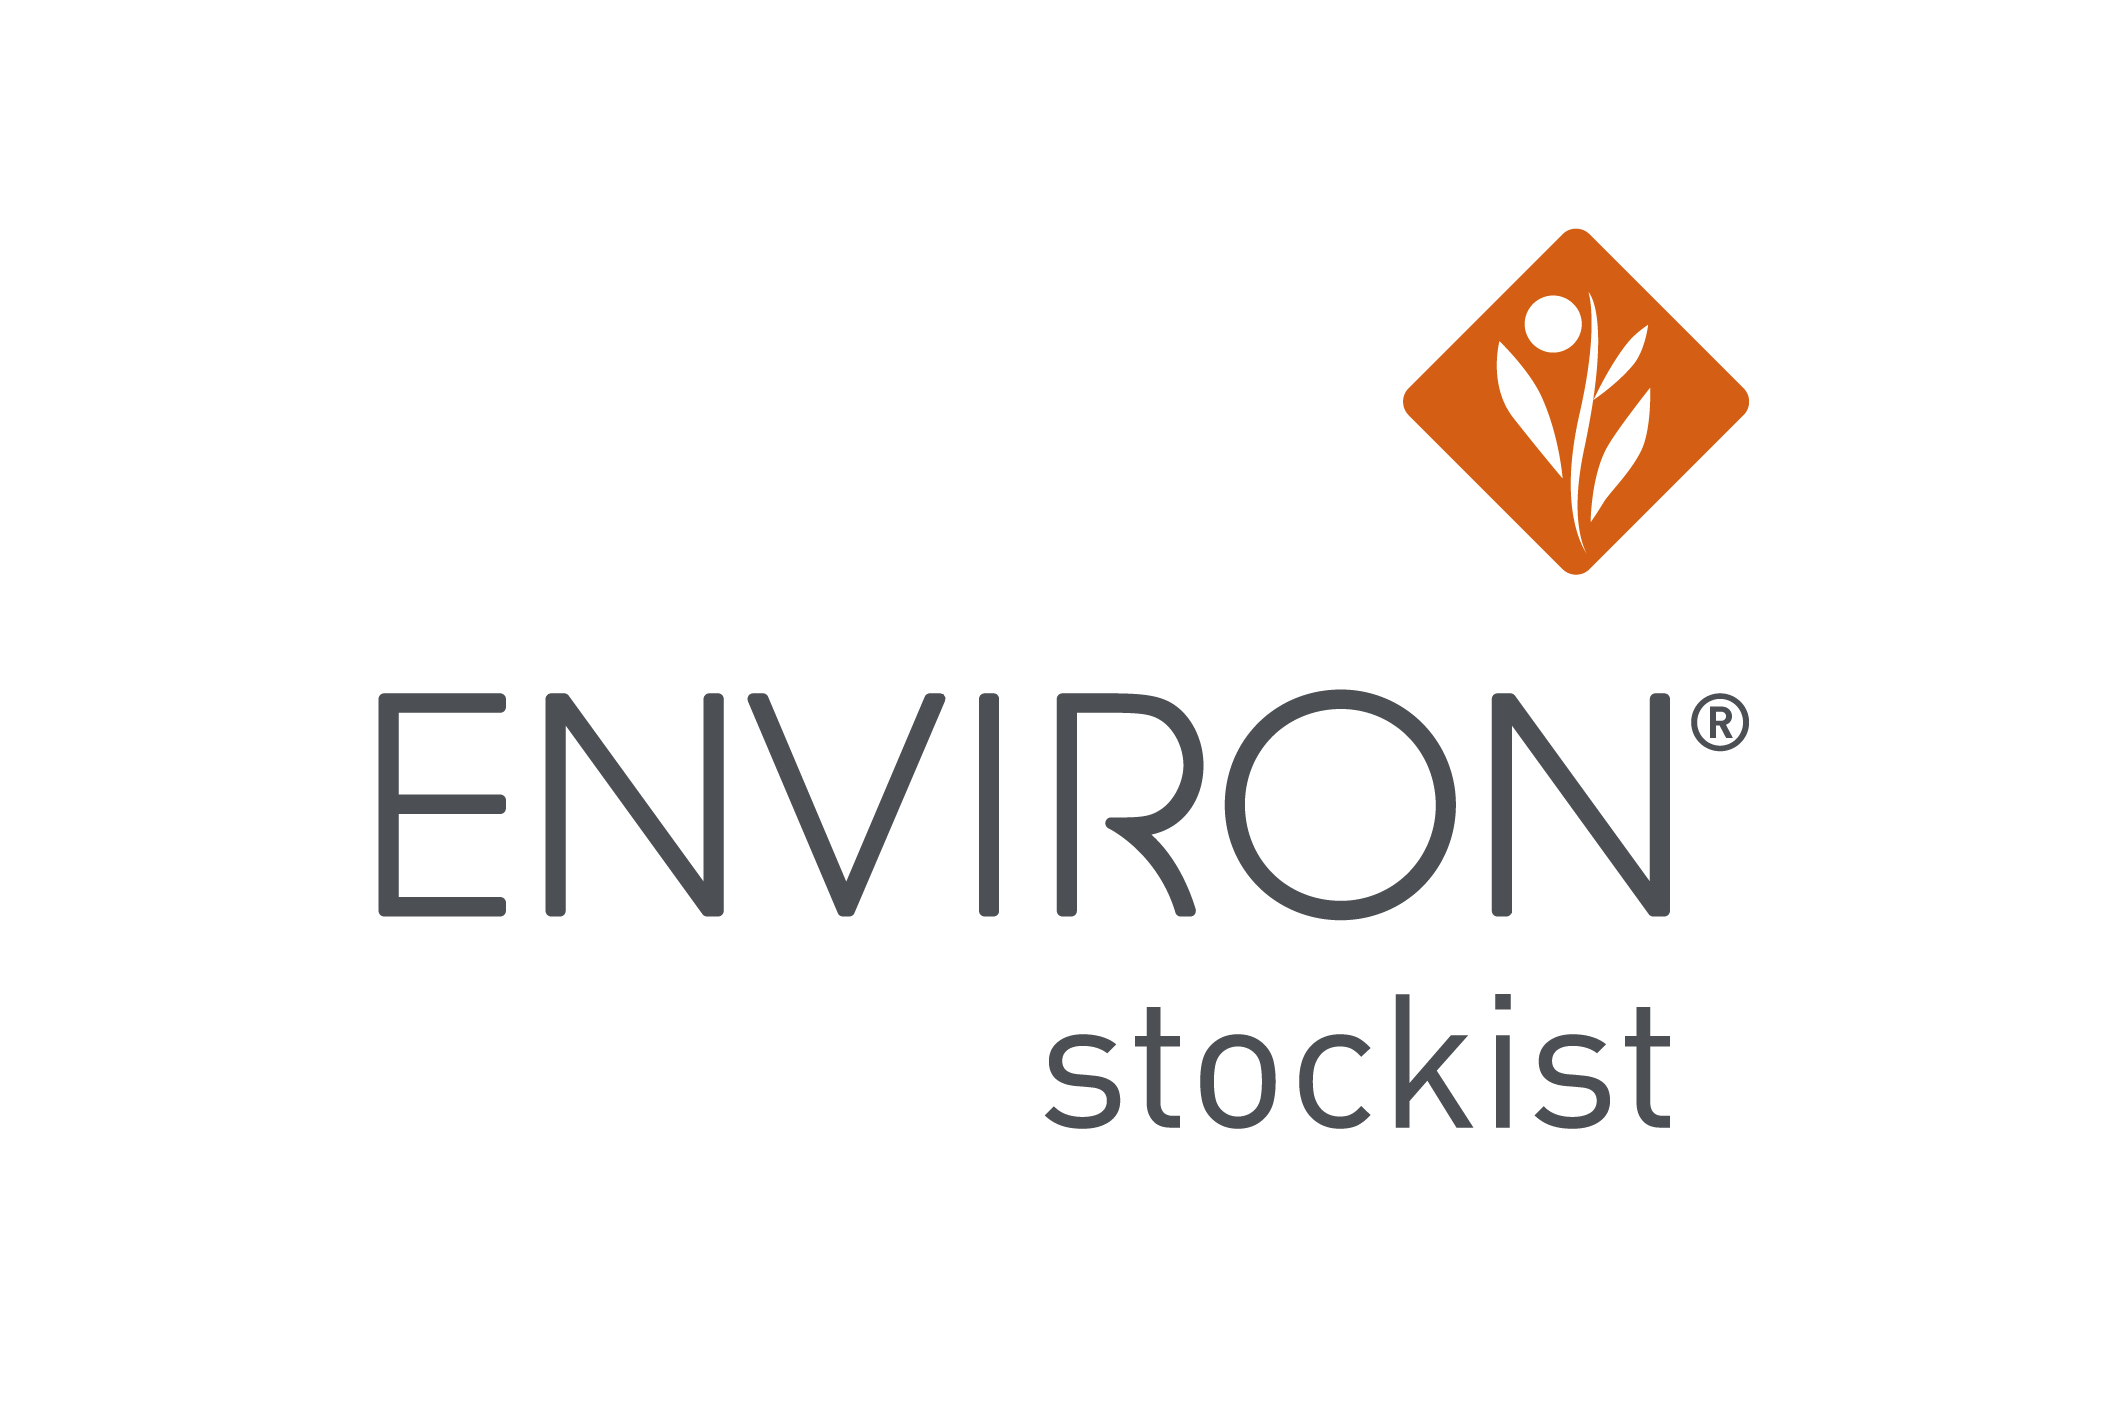 ENVIRON - Stockist & Facials